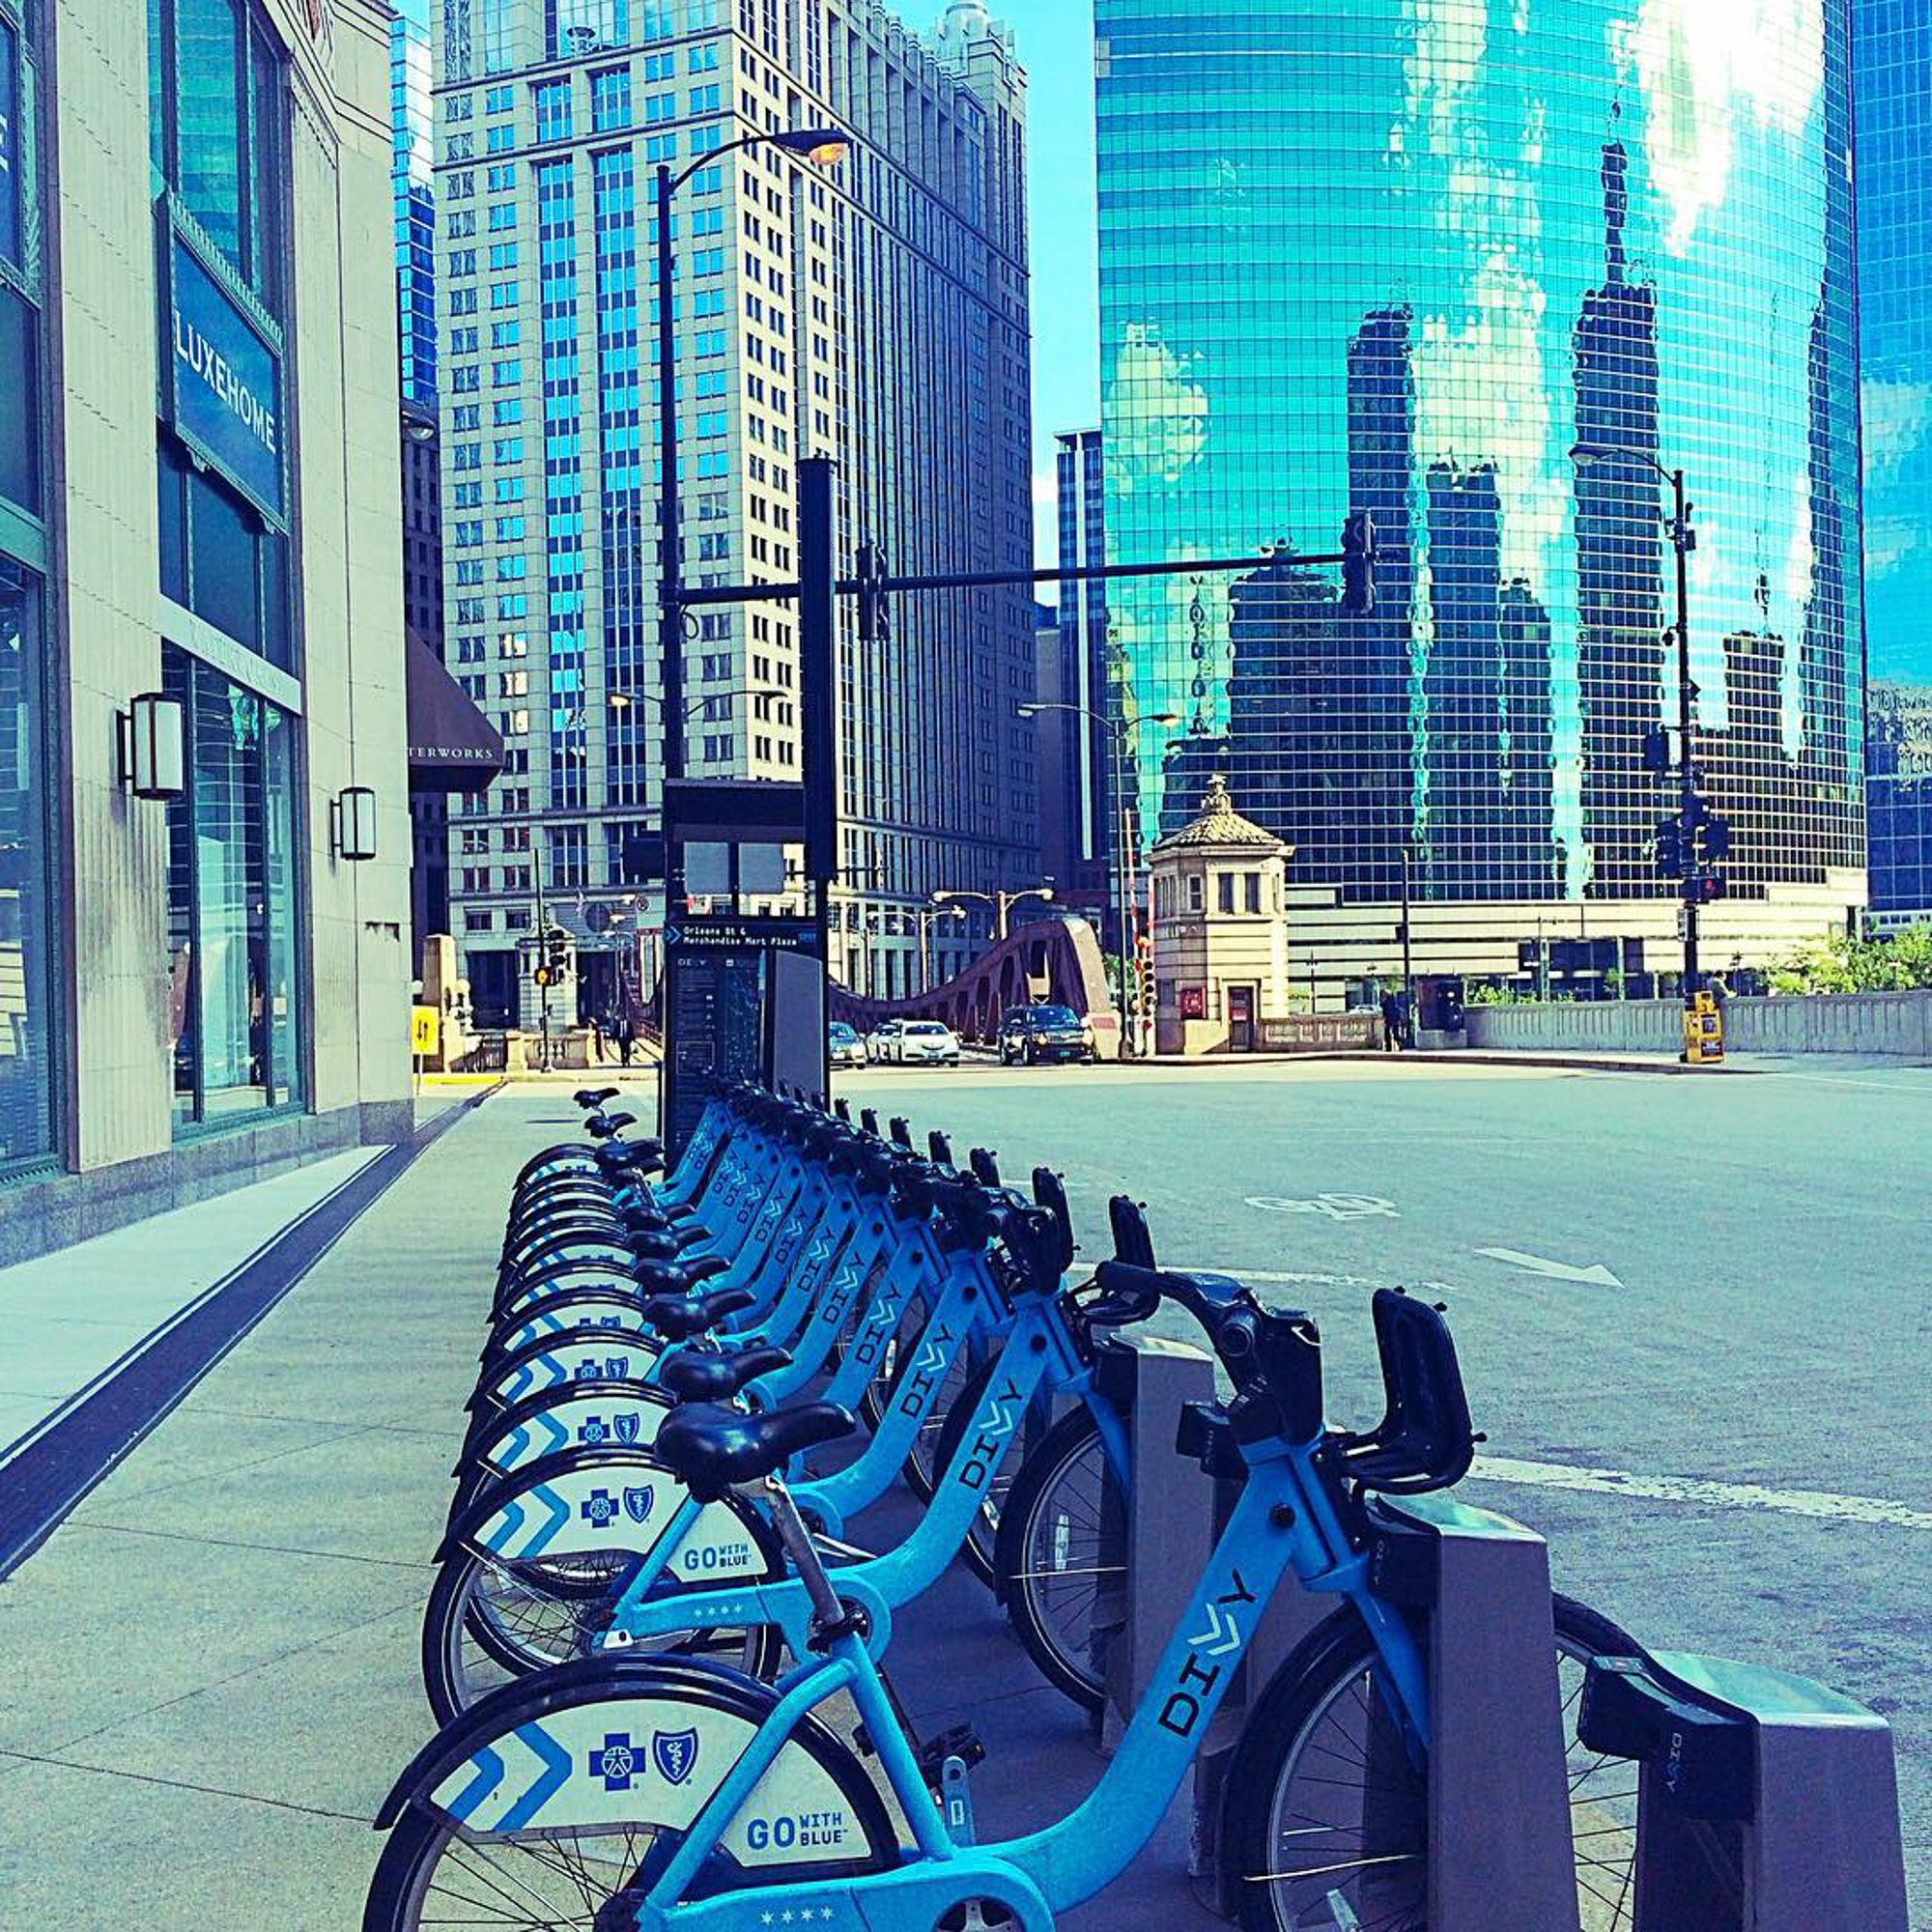 City bicycles for rental